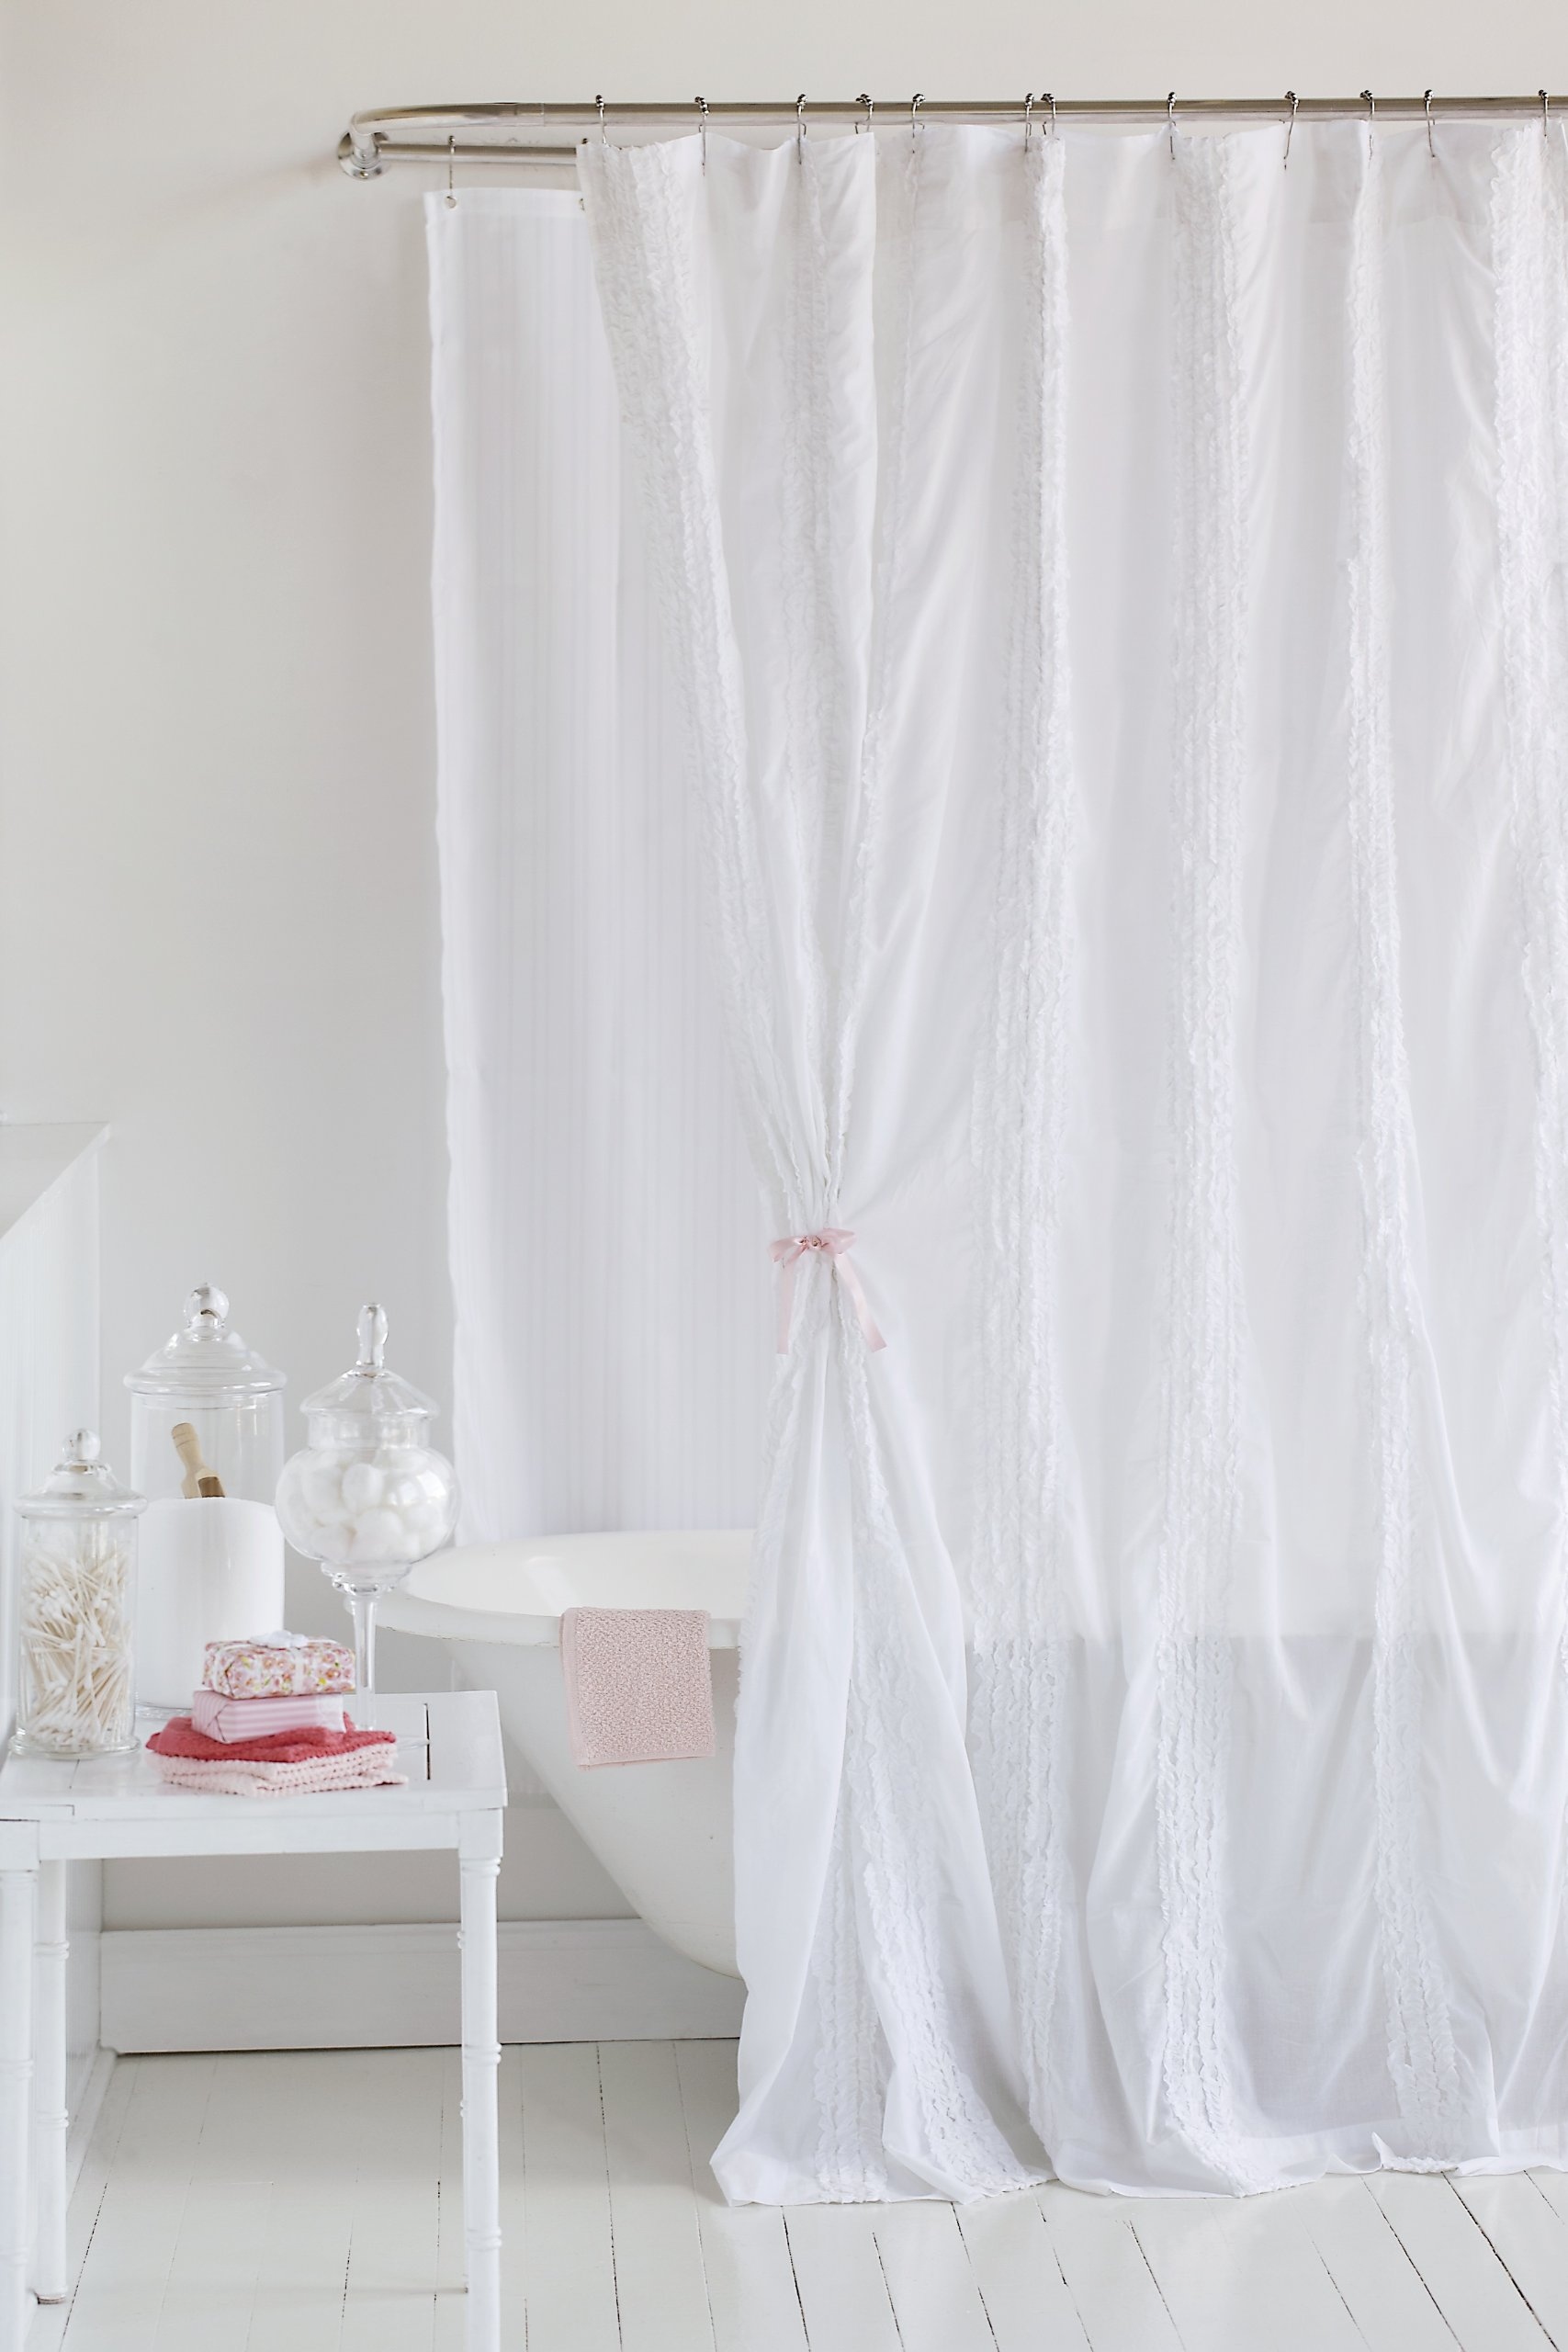 Be-you-tiful Home SC581 Laurie Ruffled Shower Curtain, 72-Inch